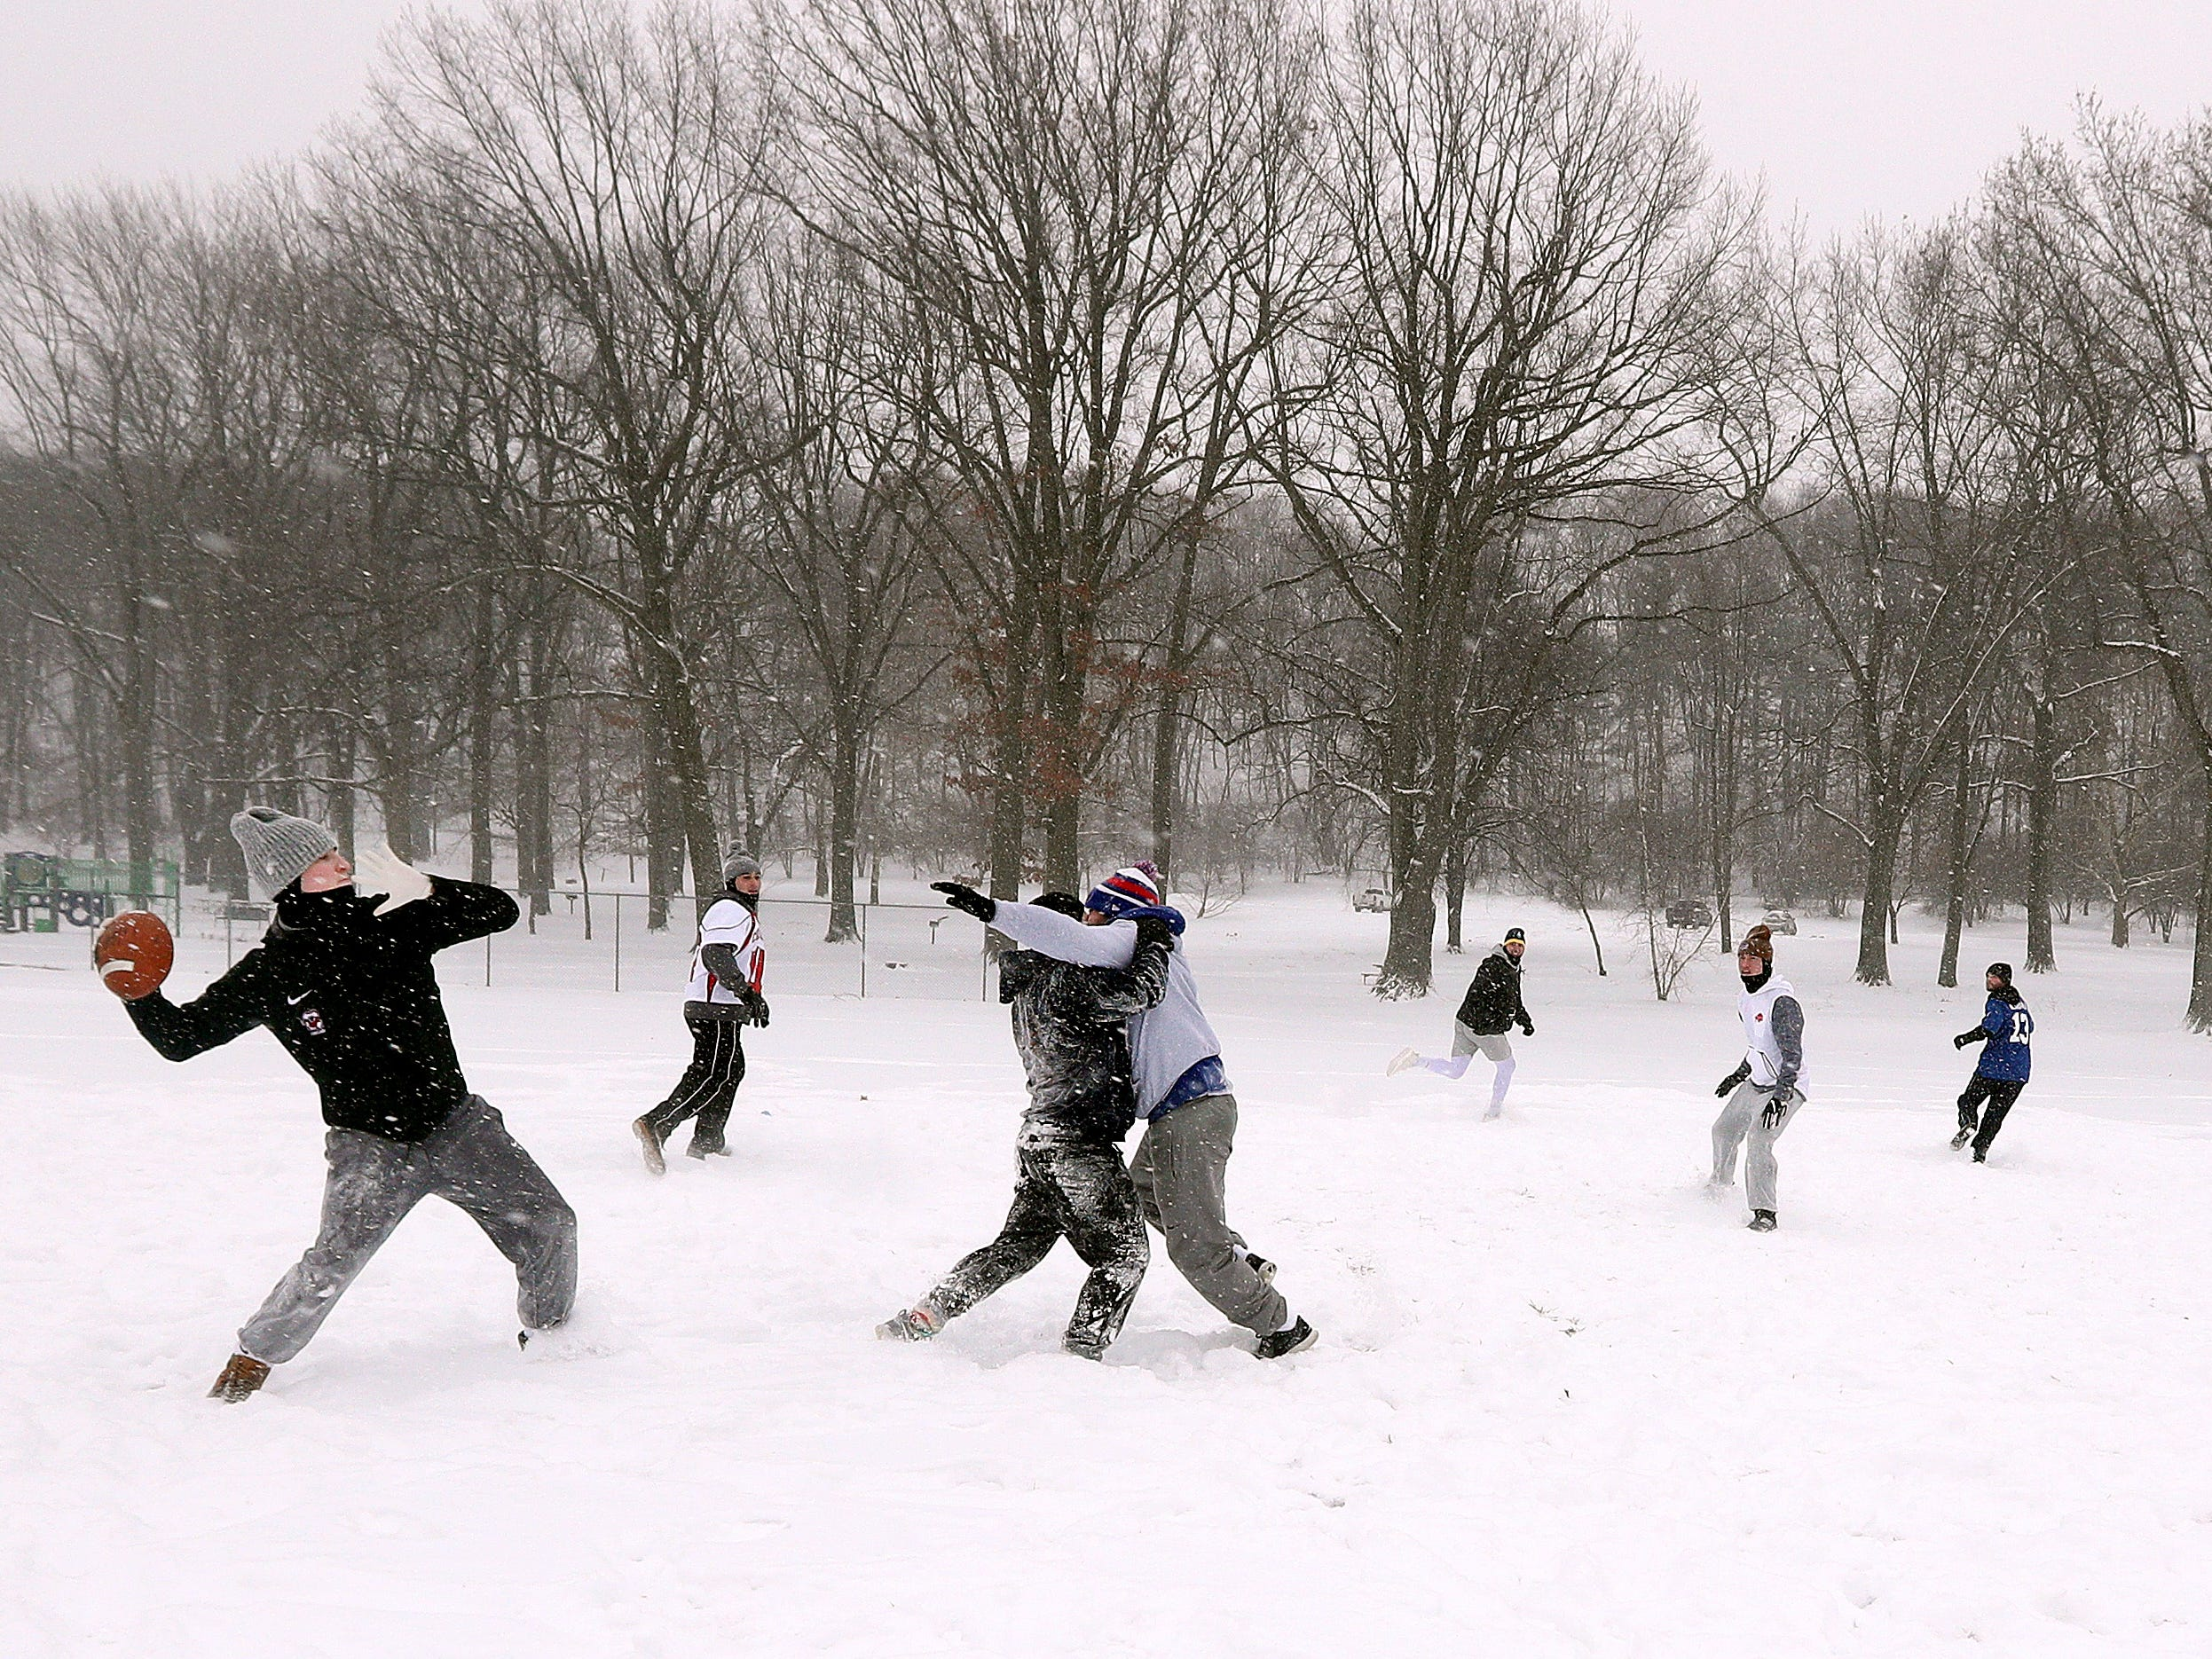 Quarterback Justin O'Dell looks to throw deep as a group of friends braved the frigid temperatures and accumulating snow to play tackle football in Cobbs Hill Park in Rochester, N.Y. on on Jan. 19, 2019.